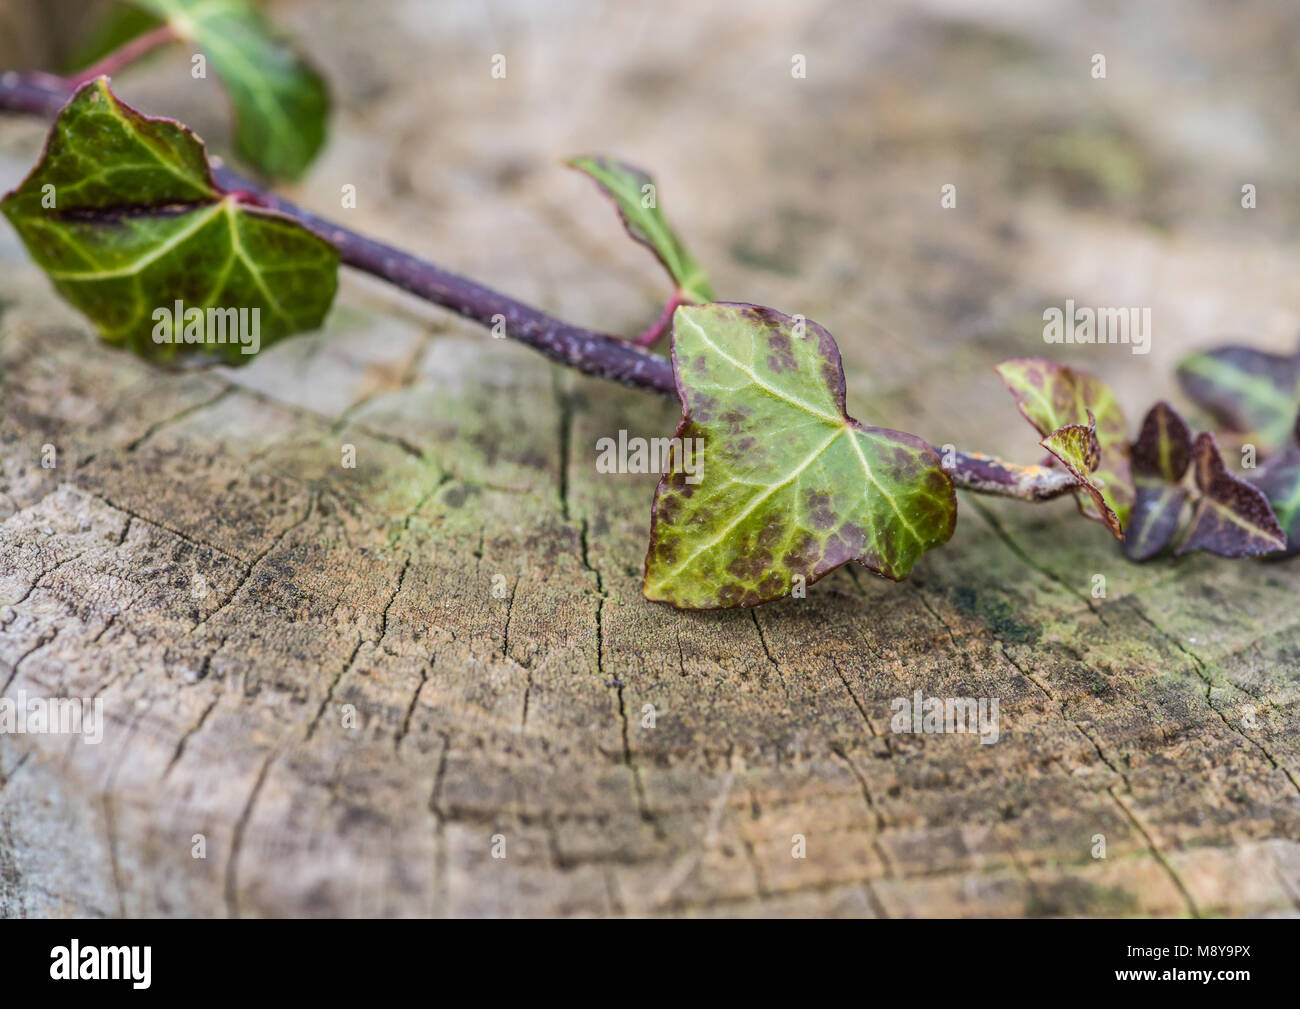 A macro shot of some small ivy leaves on top of a fence post. - Stock Image